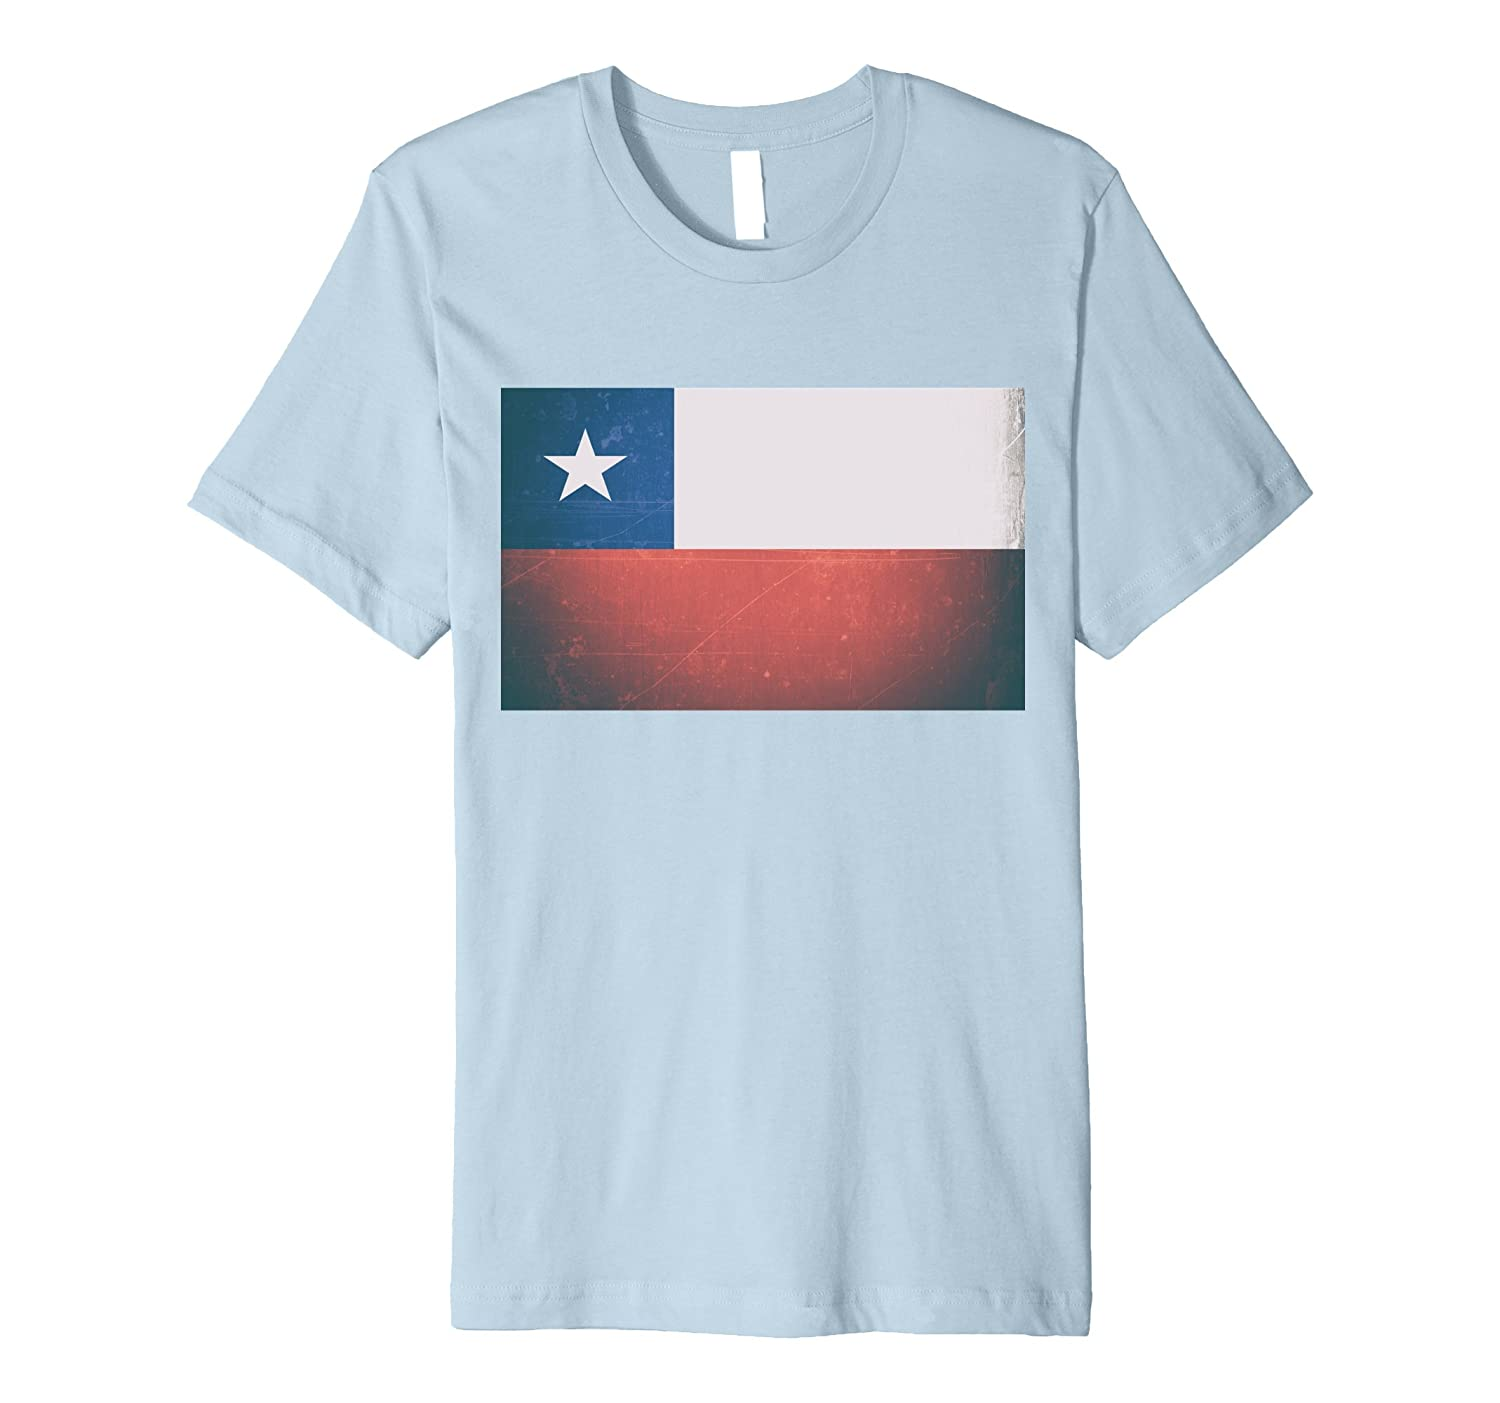 Chile Flag Shirt – New Deluxe Slim-fit Chilean Vignette Tee